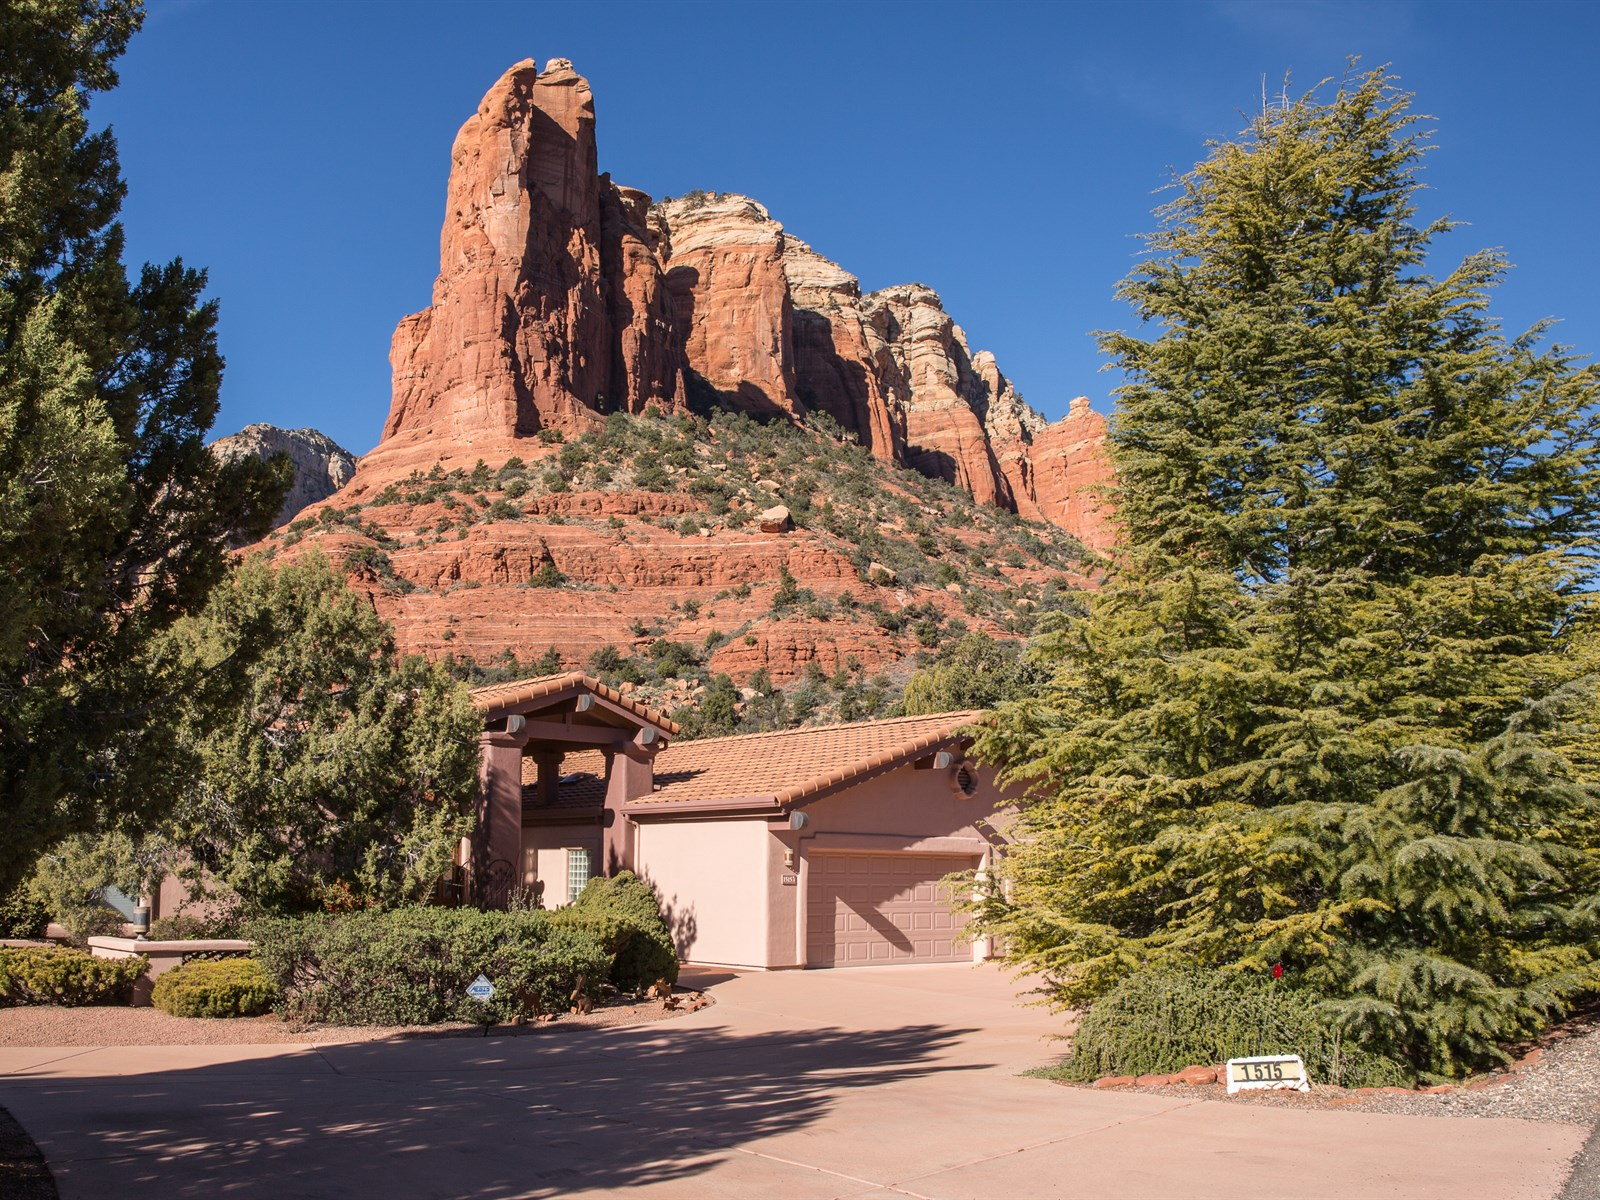 Casa Unifamiliar por un Venta en Spacious Spanish Style Home 1515 Soldiers Pass Rd Sedona, Arizona, 86336 Estados Unidos